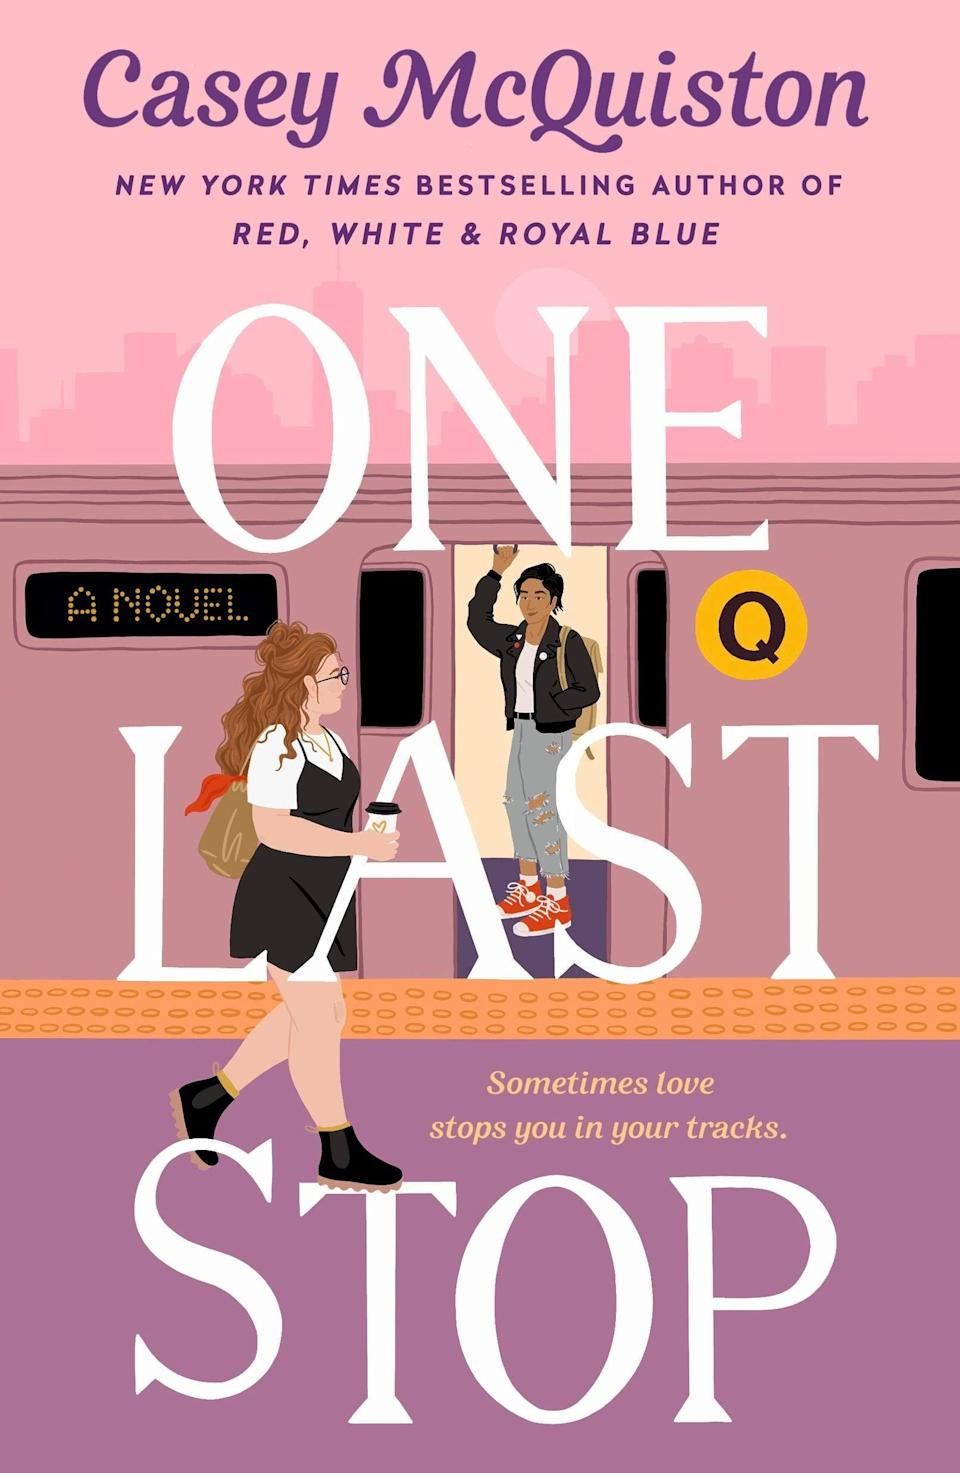 <p>Casey McQuiston is back with another swoon-worthy romance. In <span><strong>One Last Stop</strong></span>, a 23-year-old named August is firm in her belief that the epic love stories depicted in romance movies simply don't exist. But she may be forced to reexamine her beliefs when she meets a time-displaced woman named Jane on the subway and proceeds to fall hard for this alluring woman from another era.</p> <p><em>Out June 1</em></p>